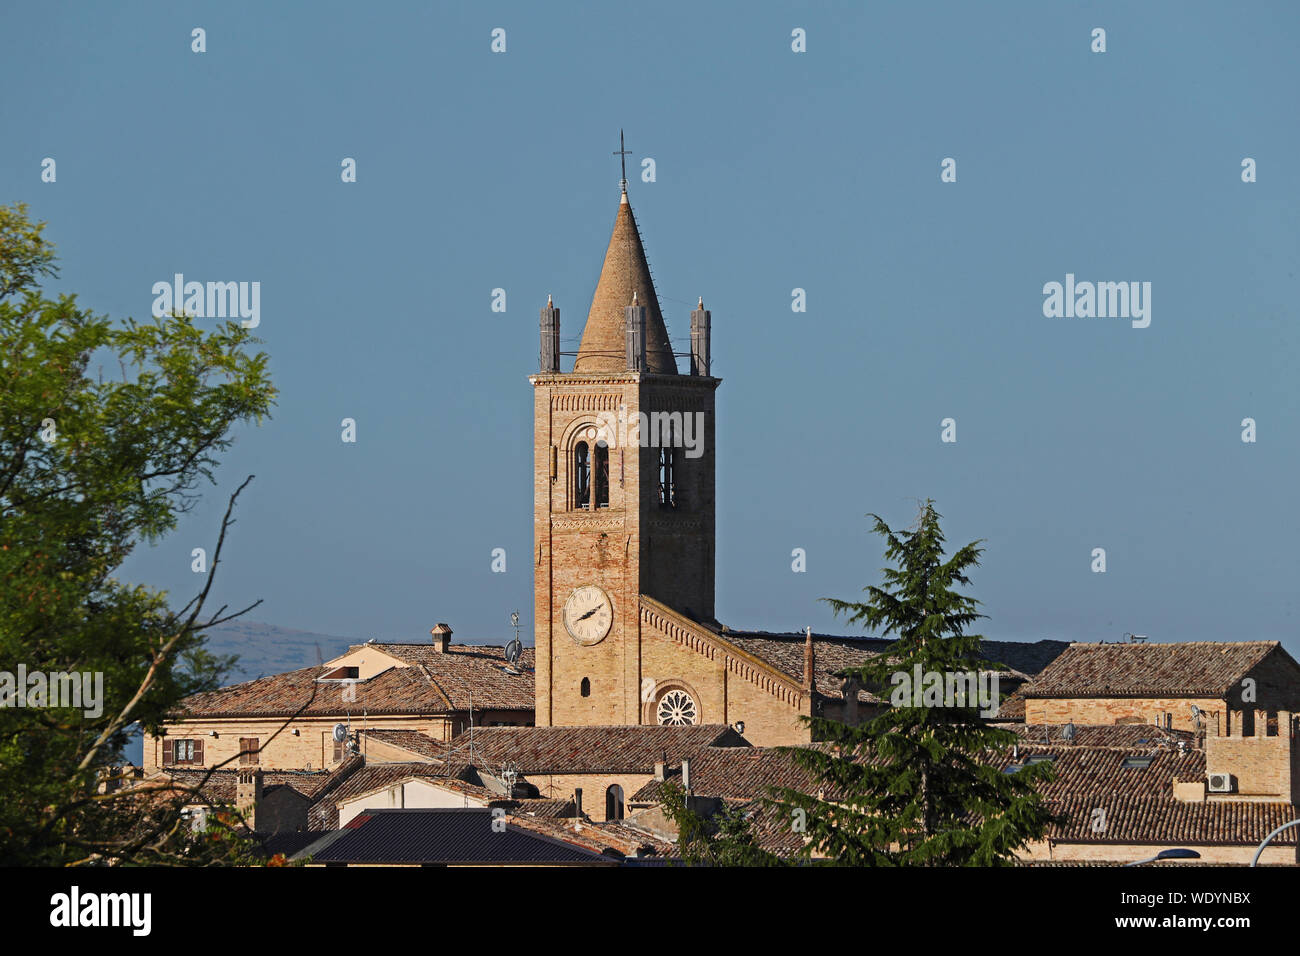 shored up clock tower on the church in the Medieval village of Montecassiano  in the Marches or Le Marche region of Italy after the 2016 earthquake Stock Photo